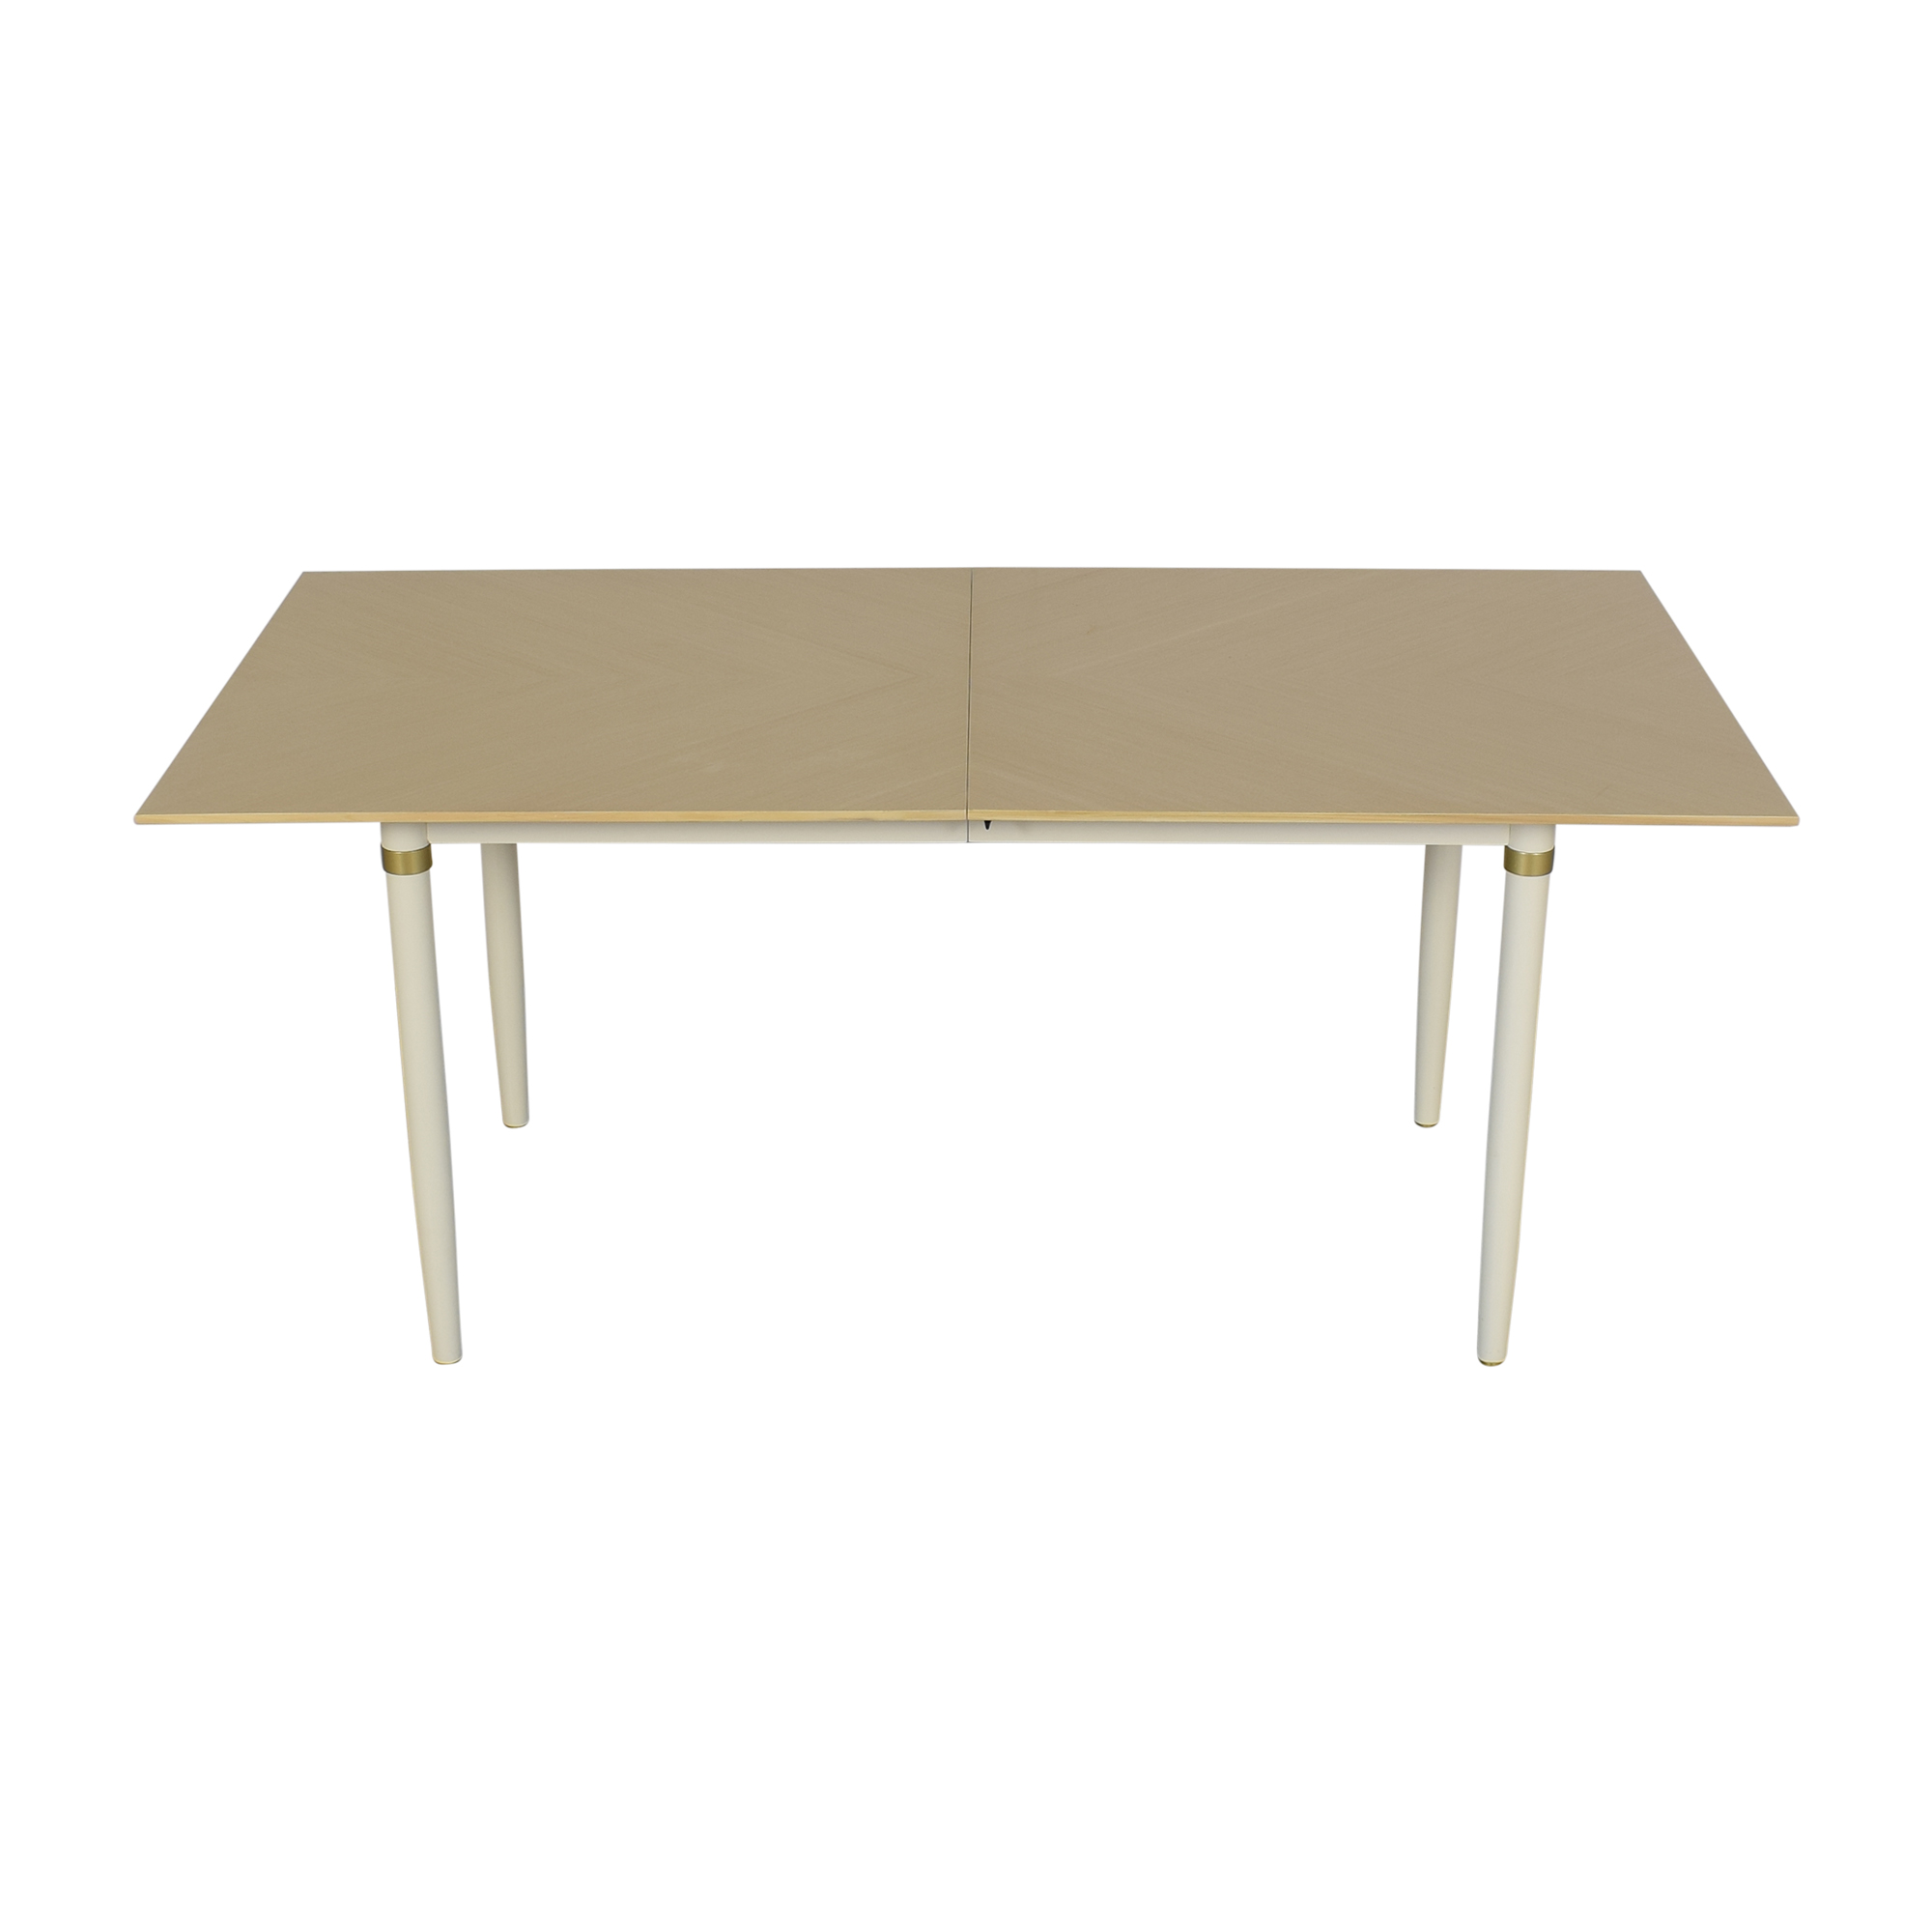 Anthropologie Anthropologie Expandable Dining Table Tables